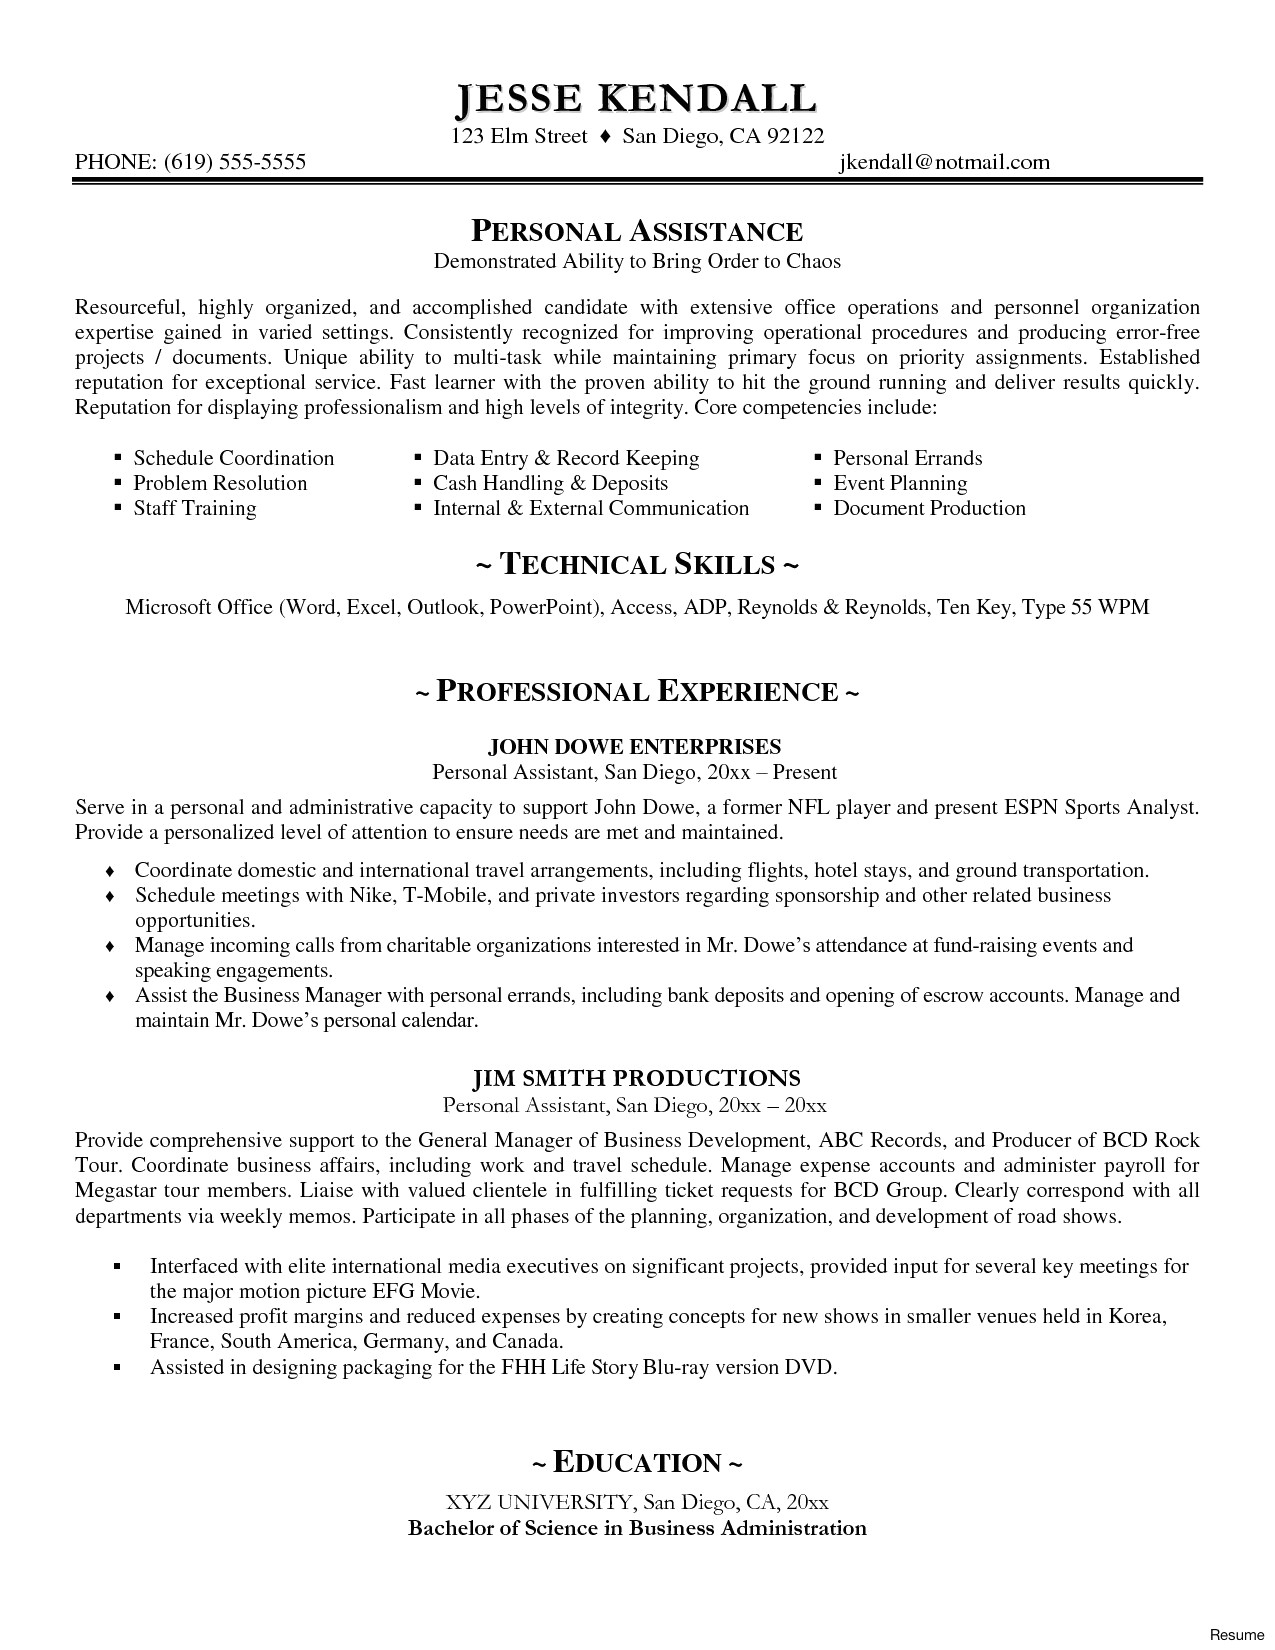 Google Docs Resume Cover Letter Template - 46 Inspirational Resume Google Docs